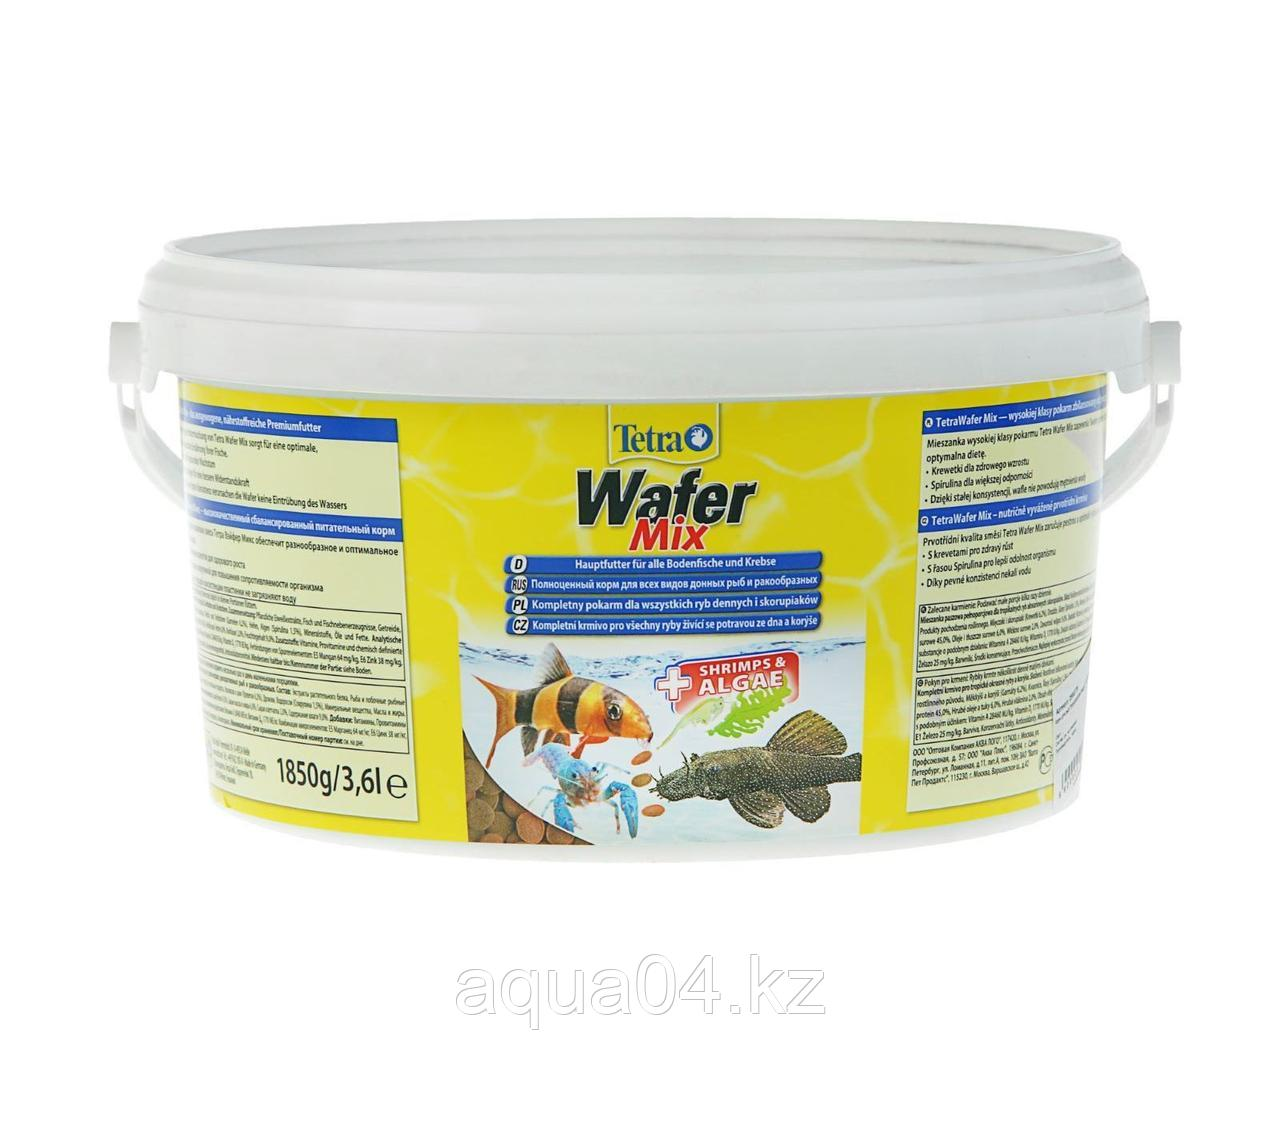 Tetra Wafer Mix (фасовка)